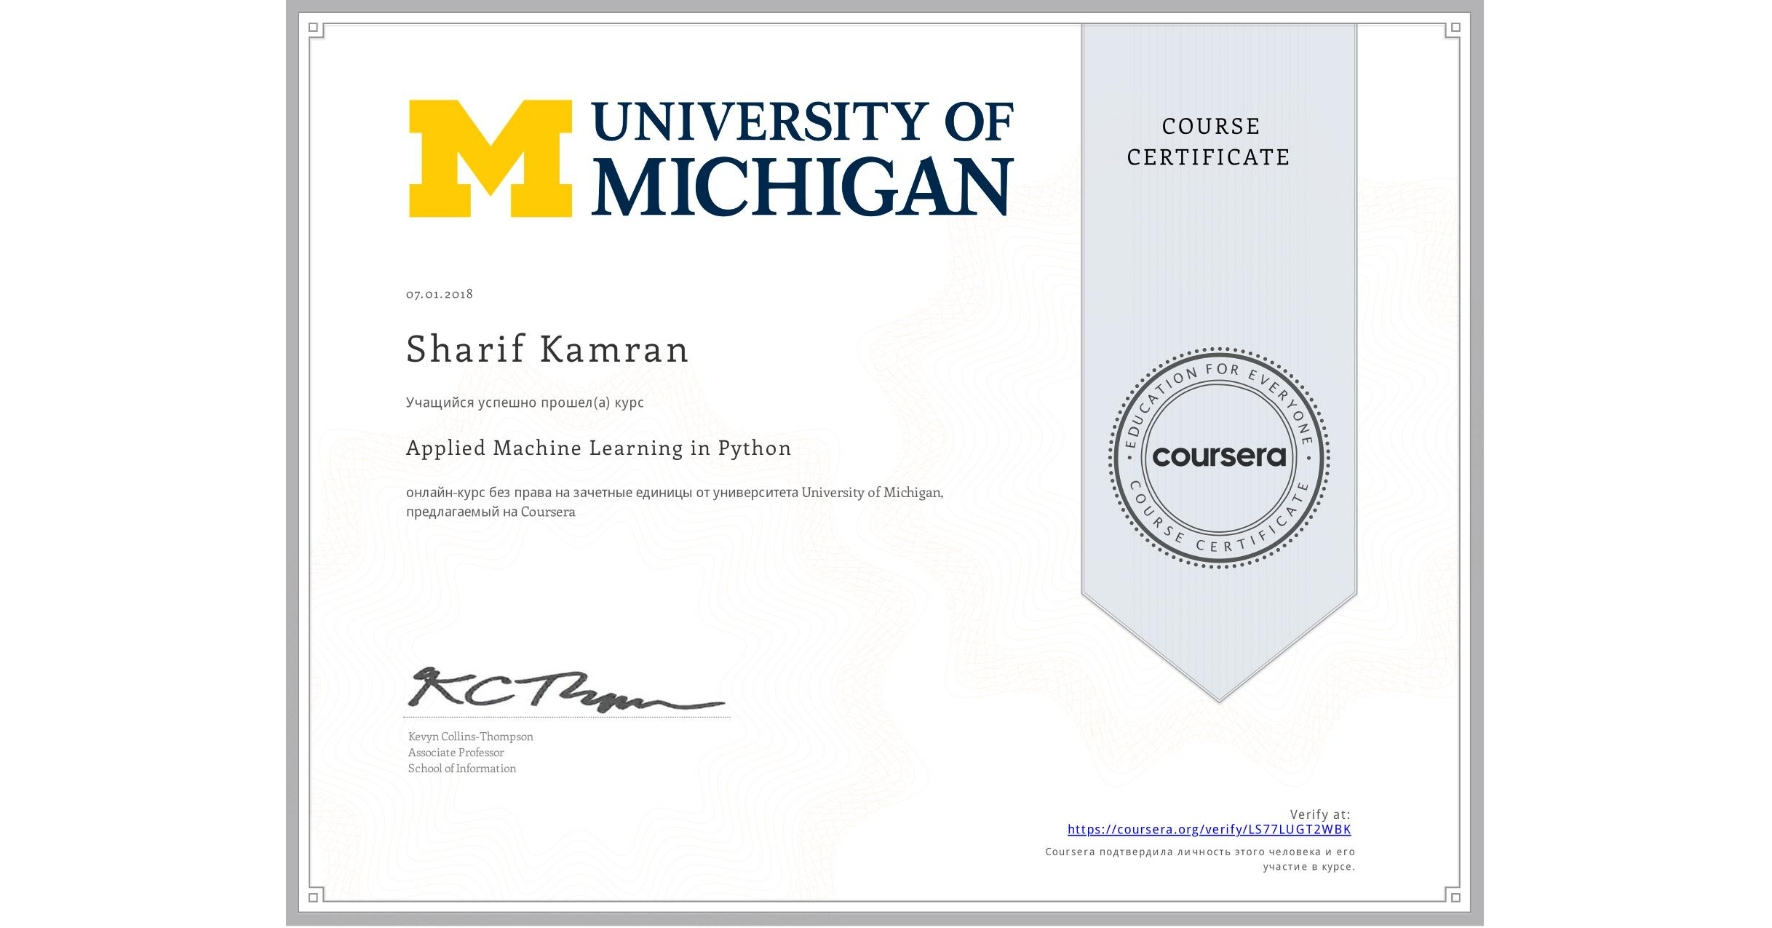 View certificate for Sharif Kamran, Applied Machine Learning in Python, an online non-credit course authorized by University of Michigan and offered through Coursera